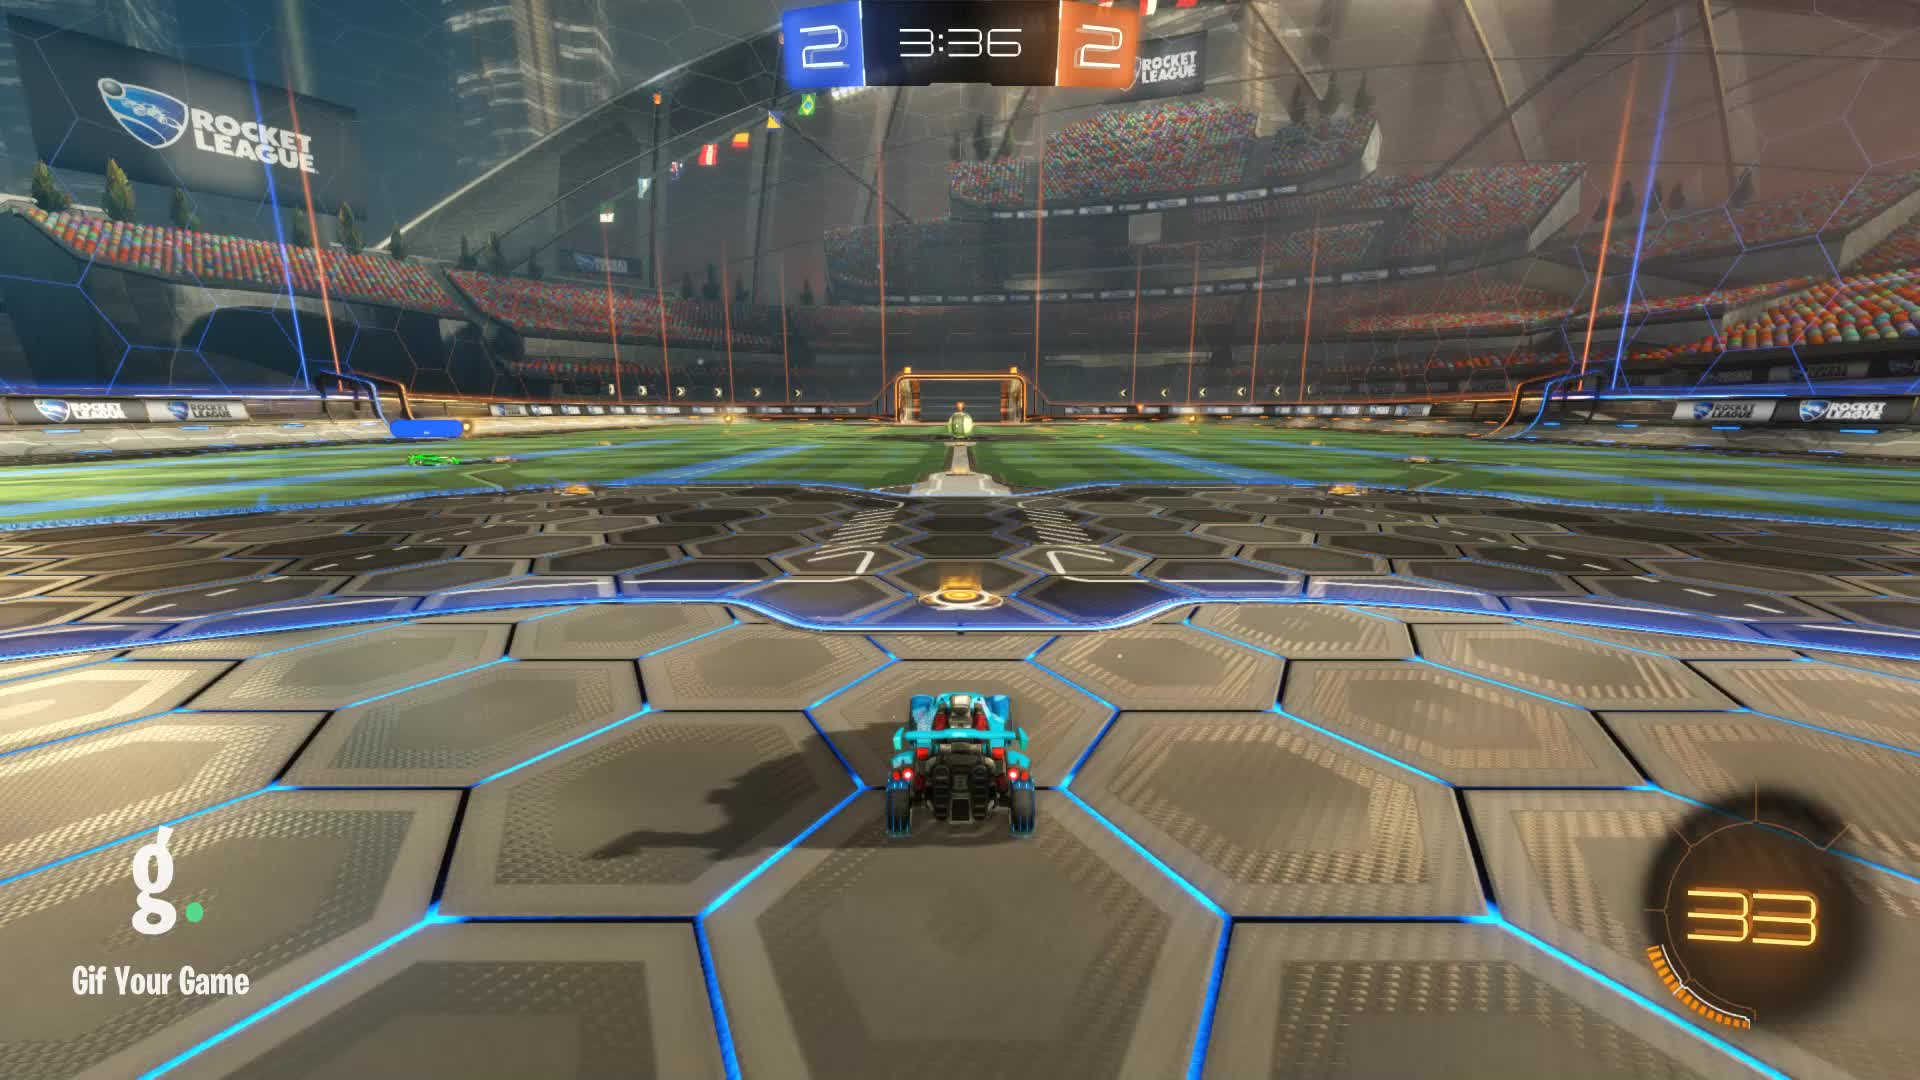 Gif Your Game, GifYourGame, Goal, Rocket League, RocketLeague, Timper [NL], Goal 5: Timper [NL] GIFs